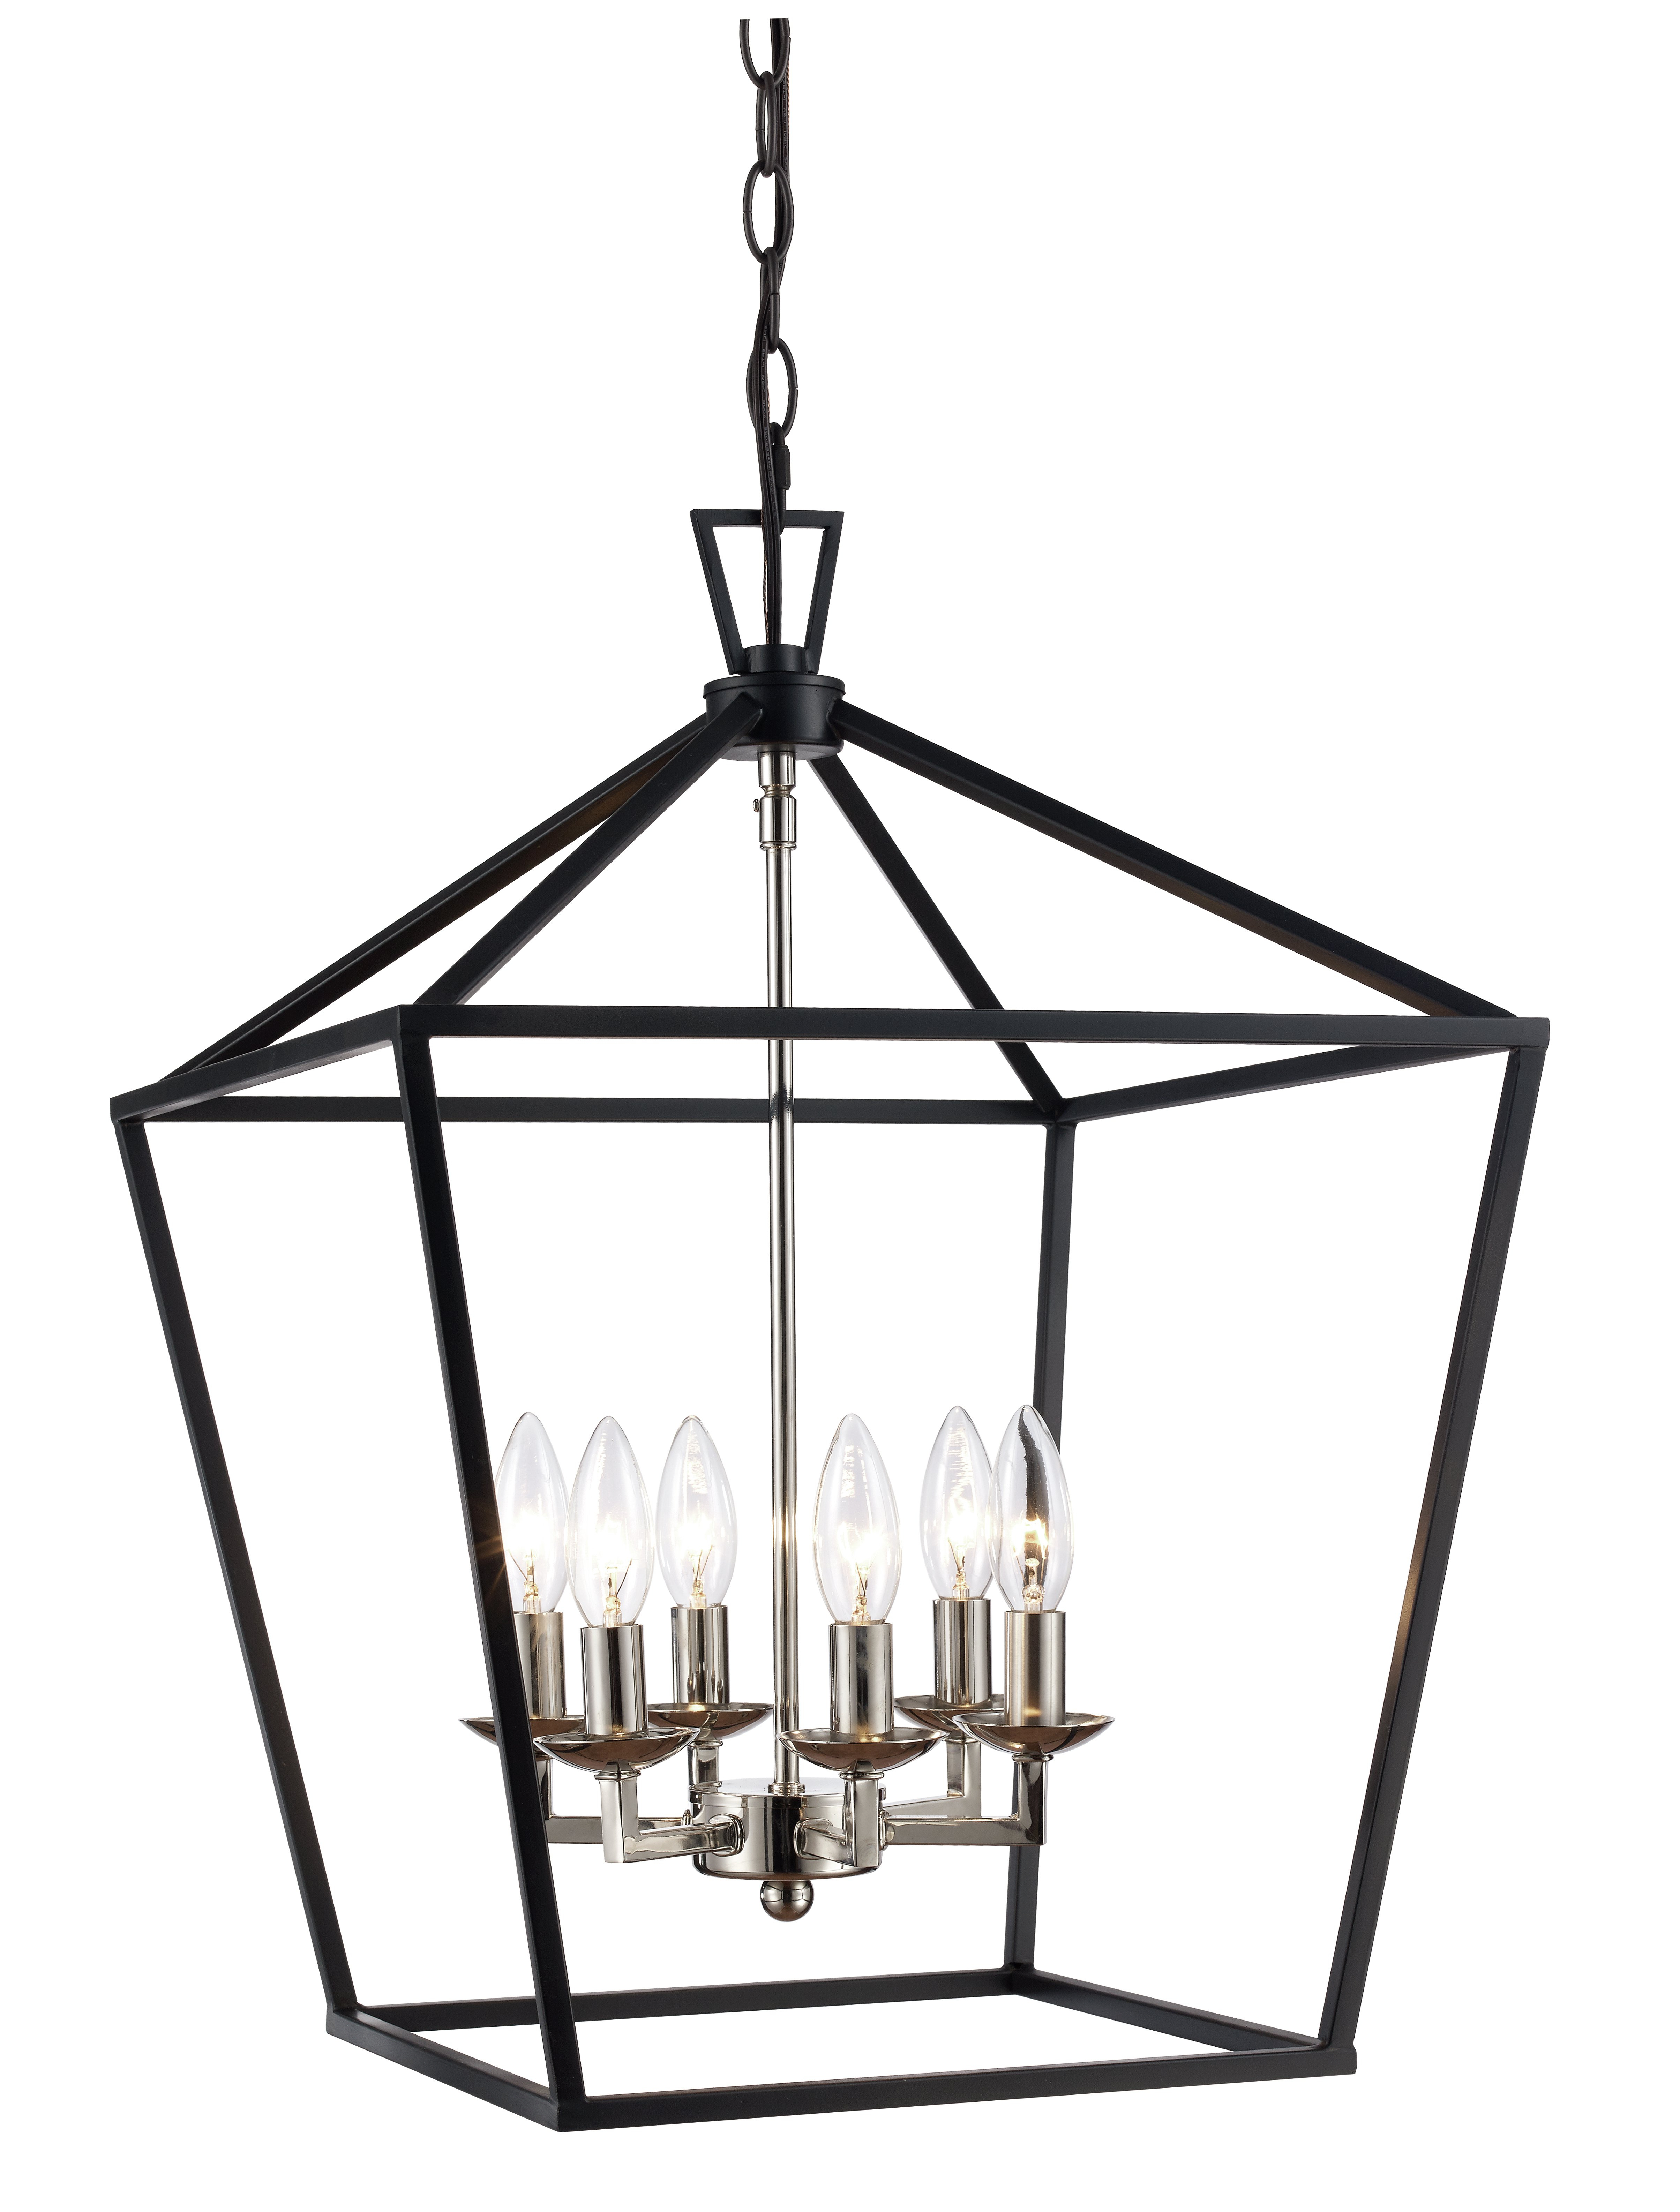 Widely Used Carmen 6 Light Lantern Geometric Pendants Pertaining To Carmen 6 Light Lantern Geometric Pendant (View 2 of 20)